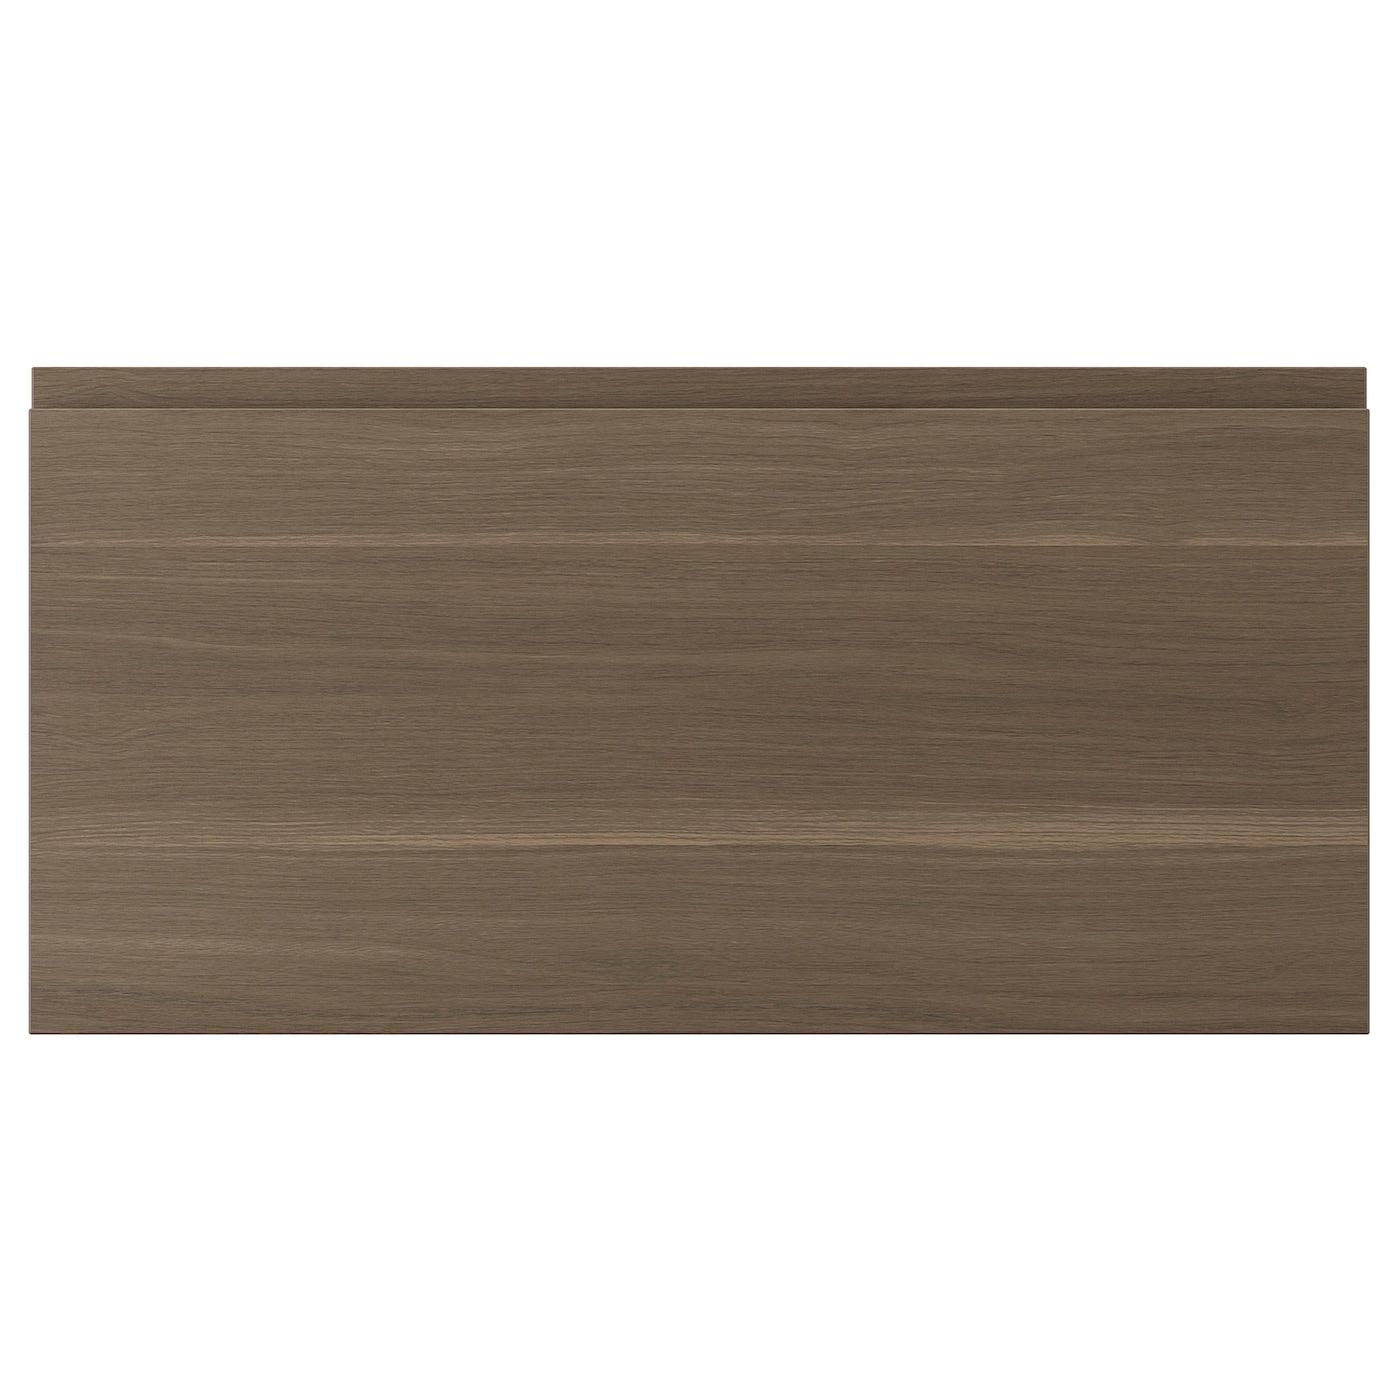 Voxtorp Drawer Front Walnut Effect 80x40 Cm In 2020 Ikea